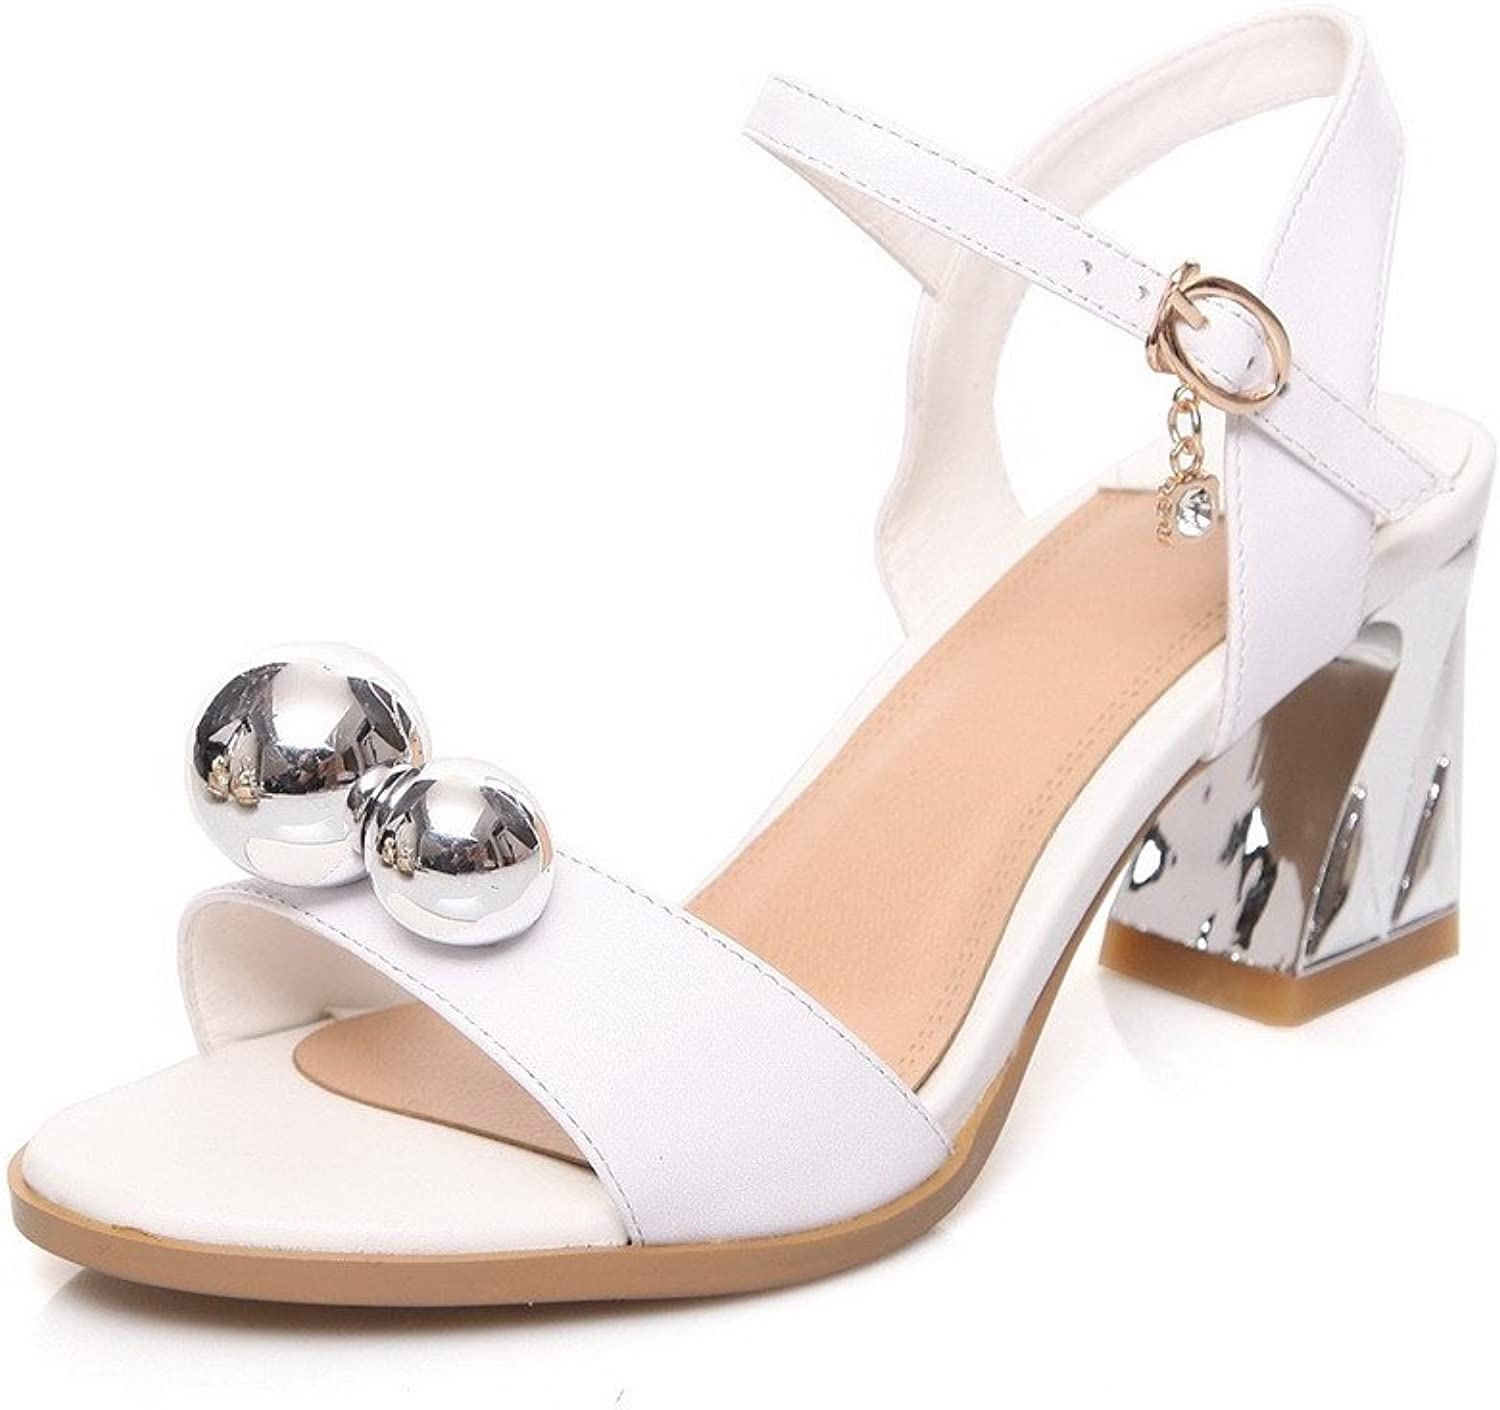 AllhqFashion Women's Kitten Heels Soft Material Solid Buckle Open Toe Sandals